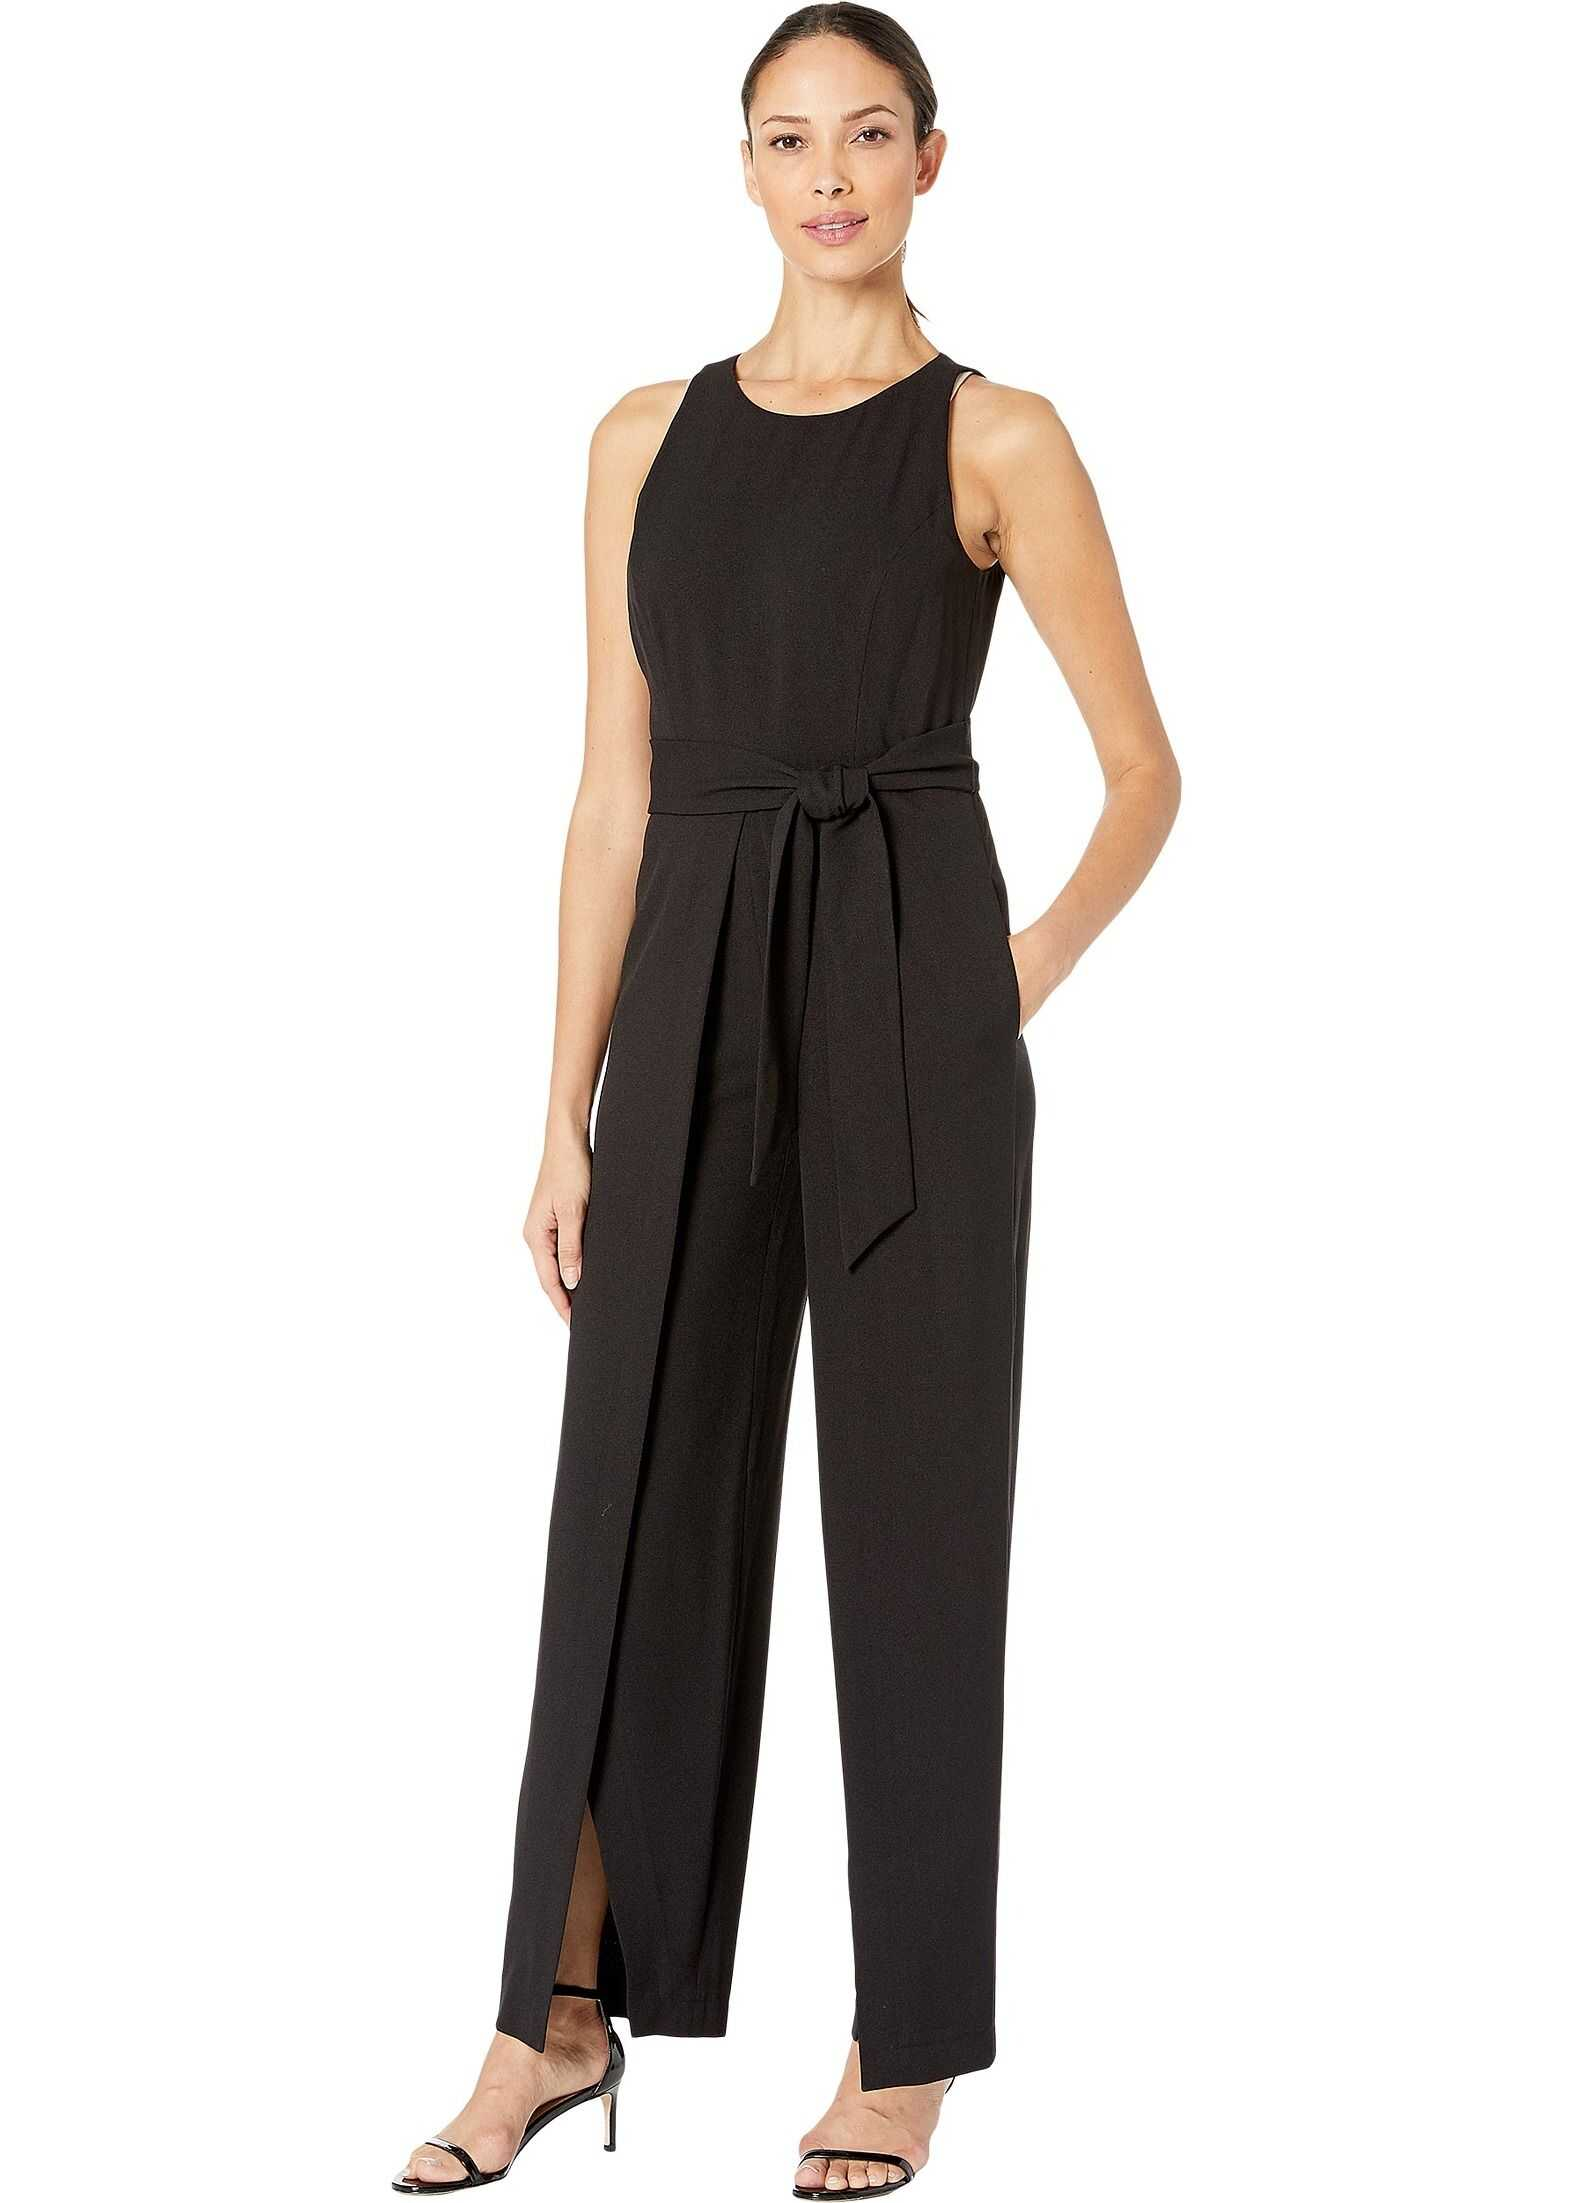 Nine West Textured Crepe Sleeveless Jumpsuit Belted with a Flyaway Pants Black